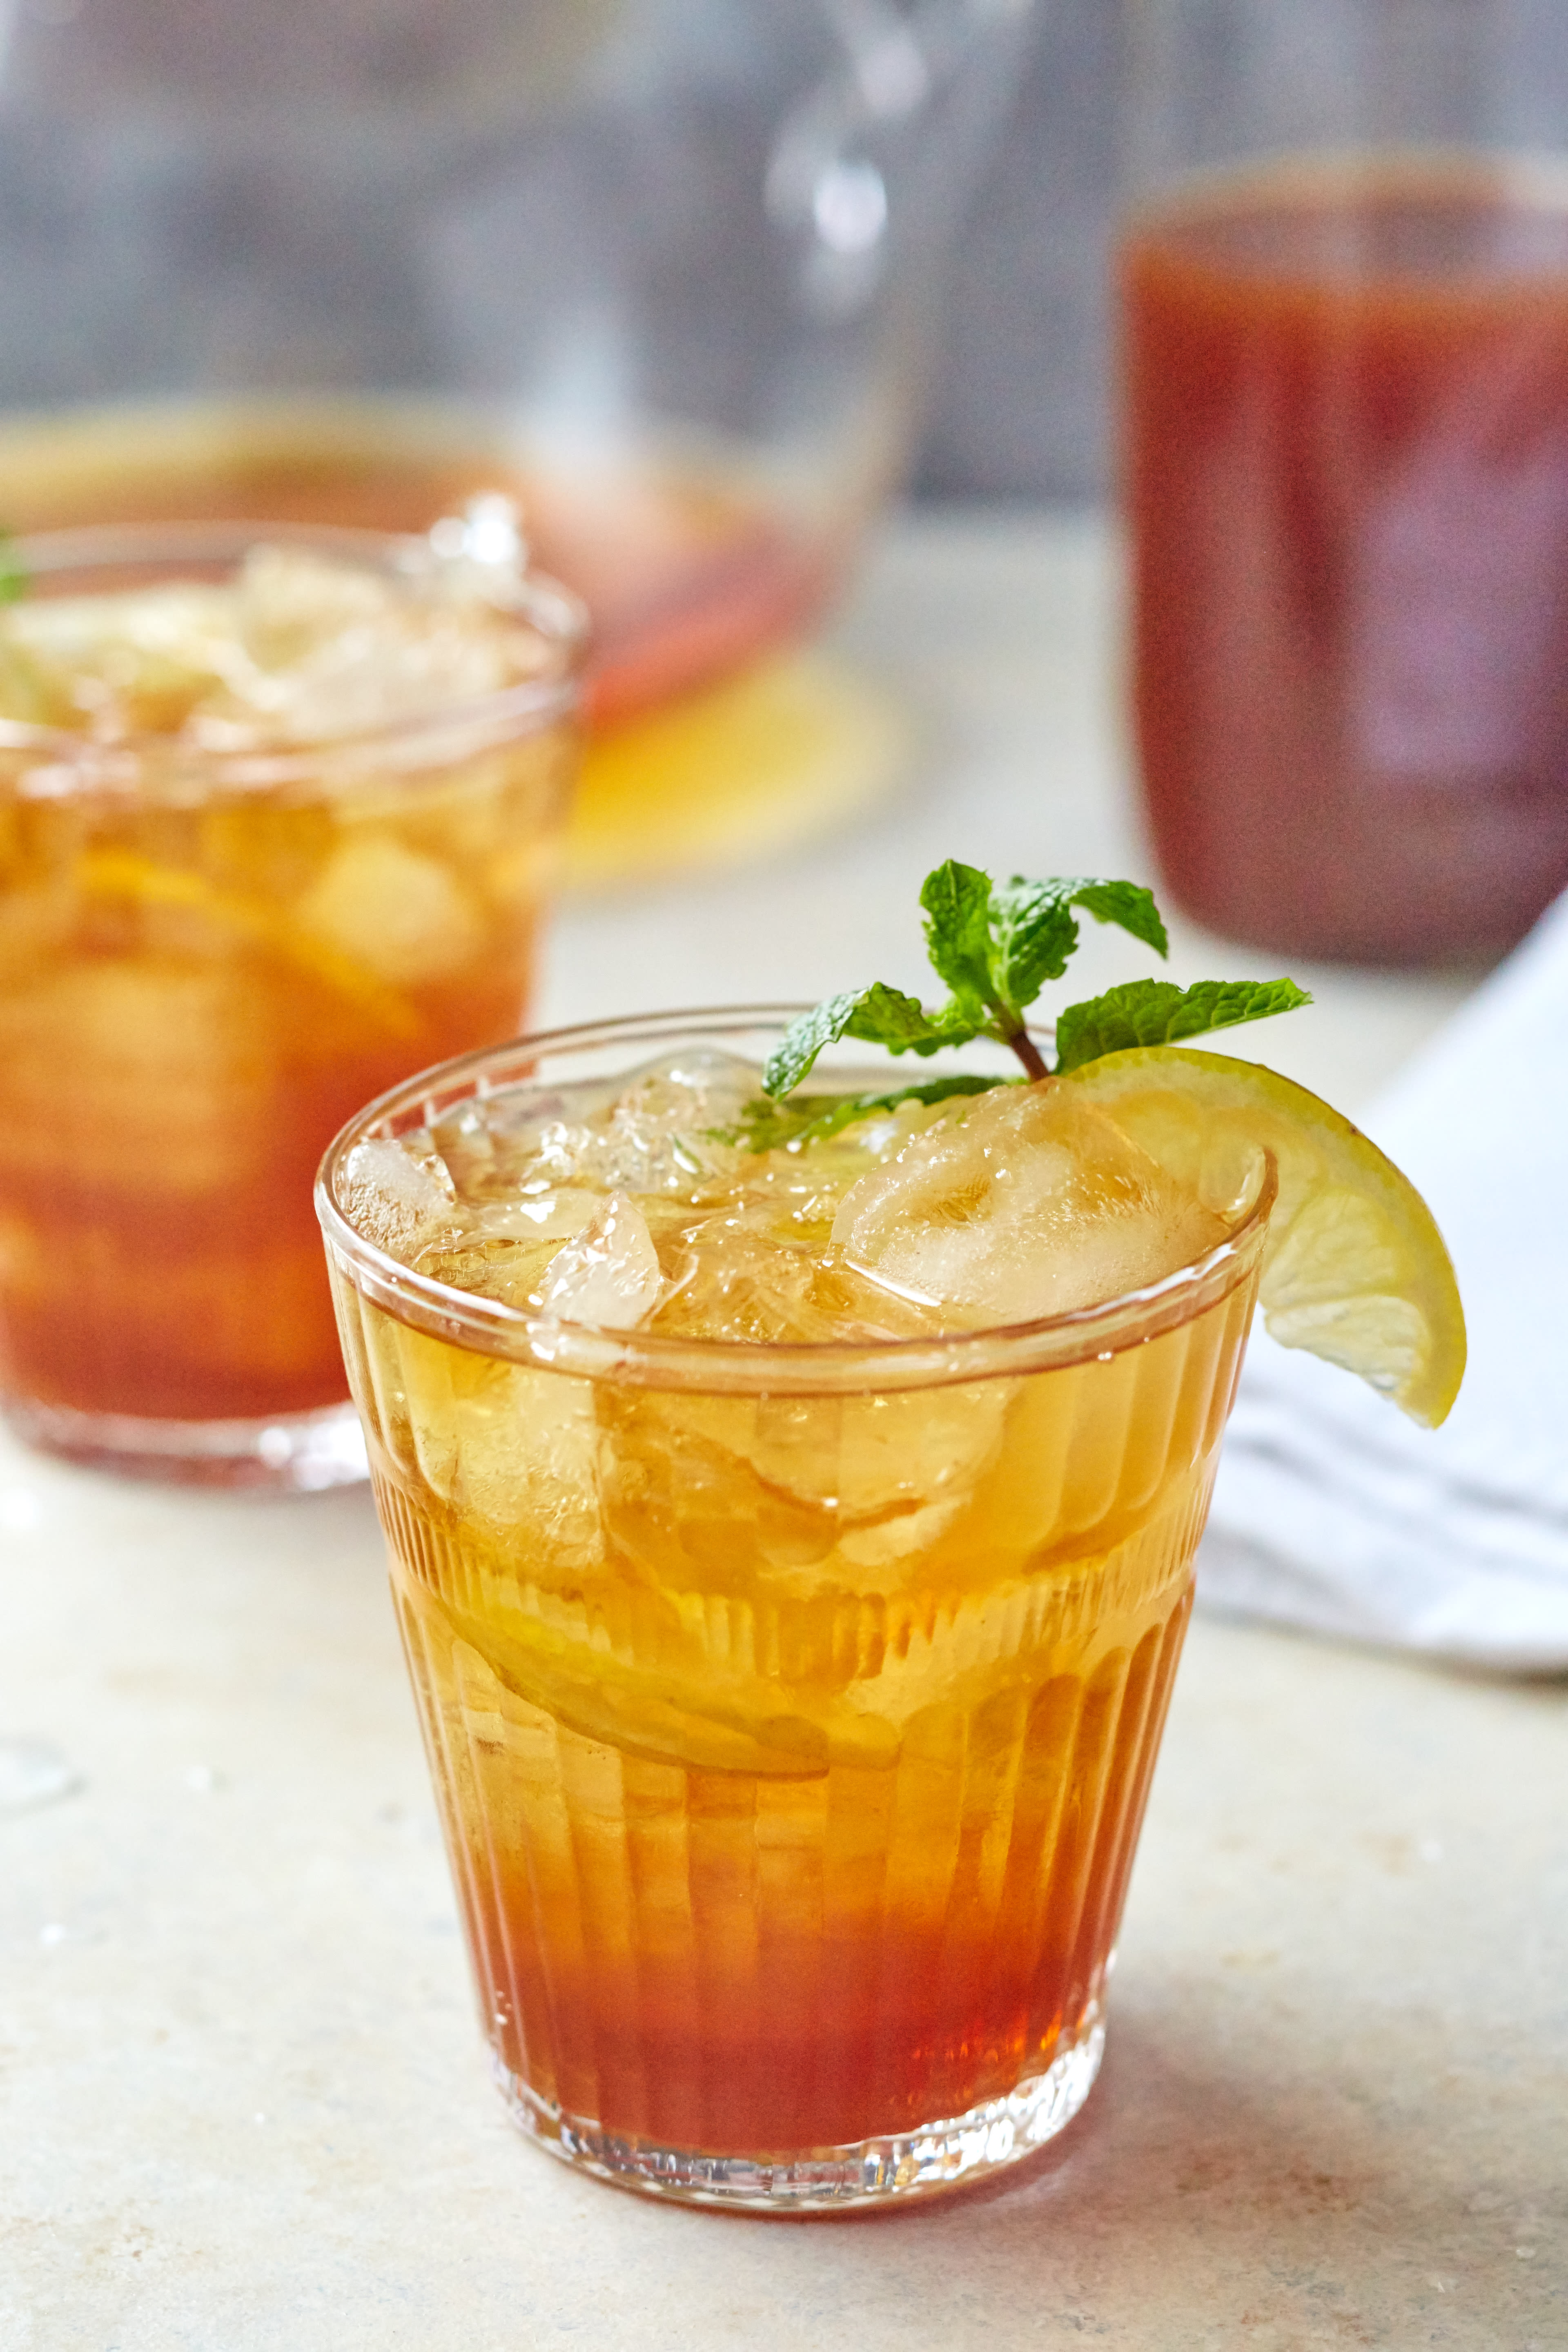 Watch Drink a Lot of Iced Tea Watch Out for Kidney Stones video